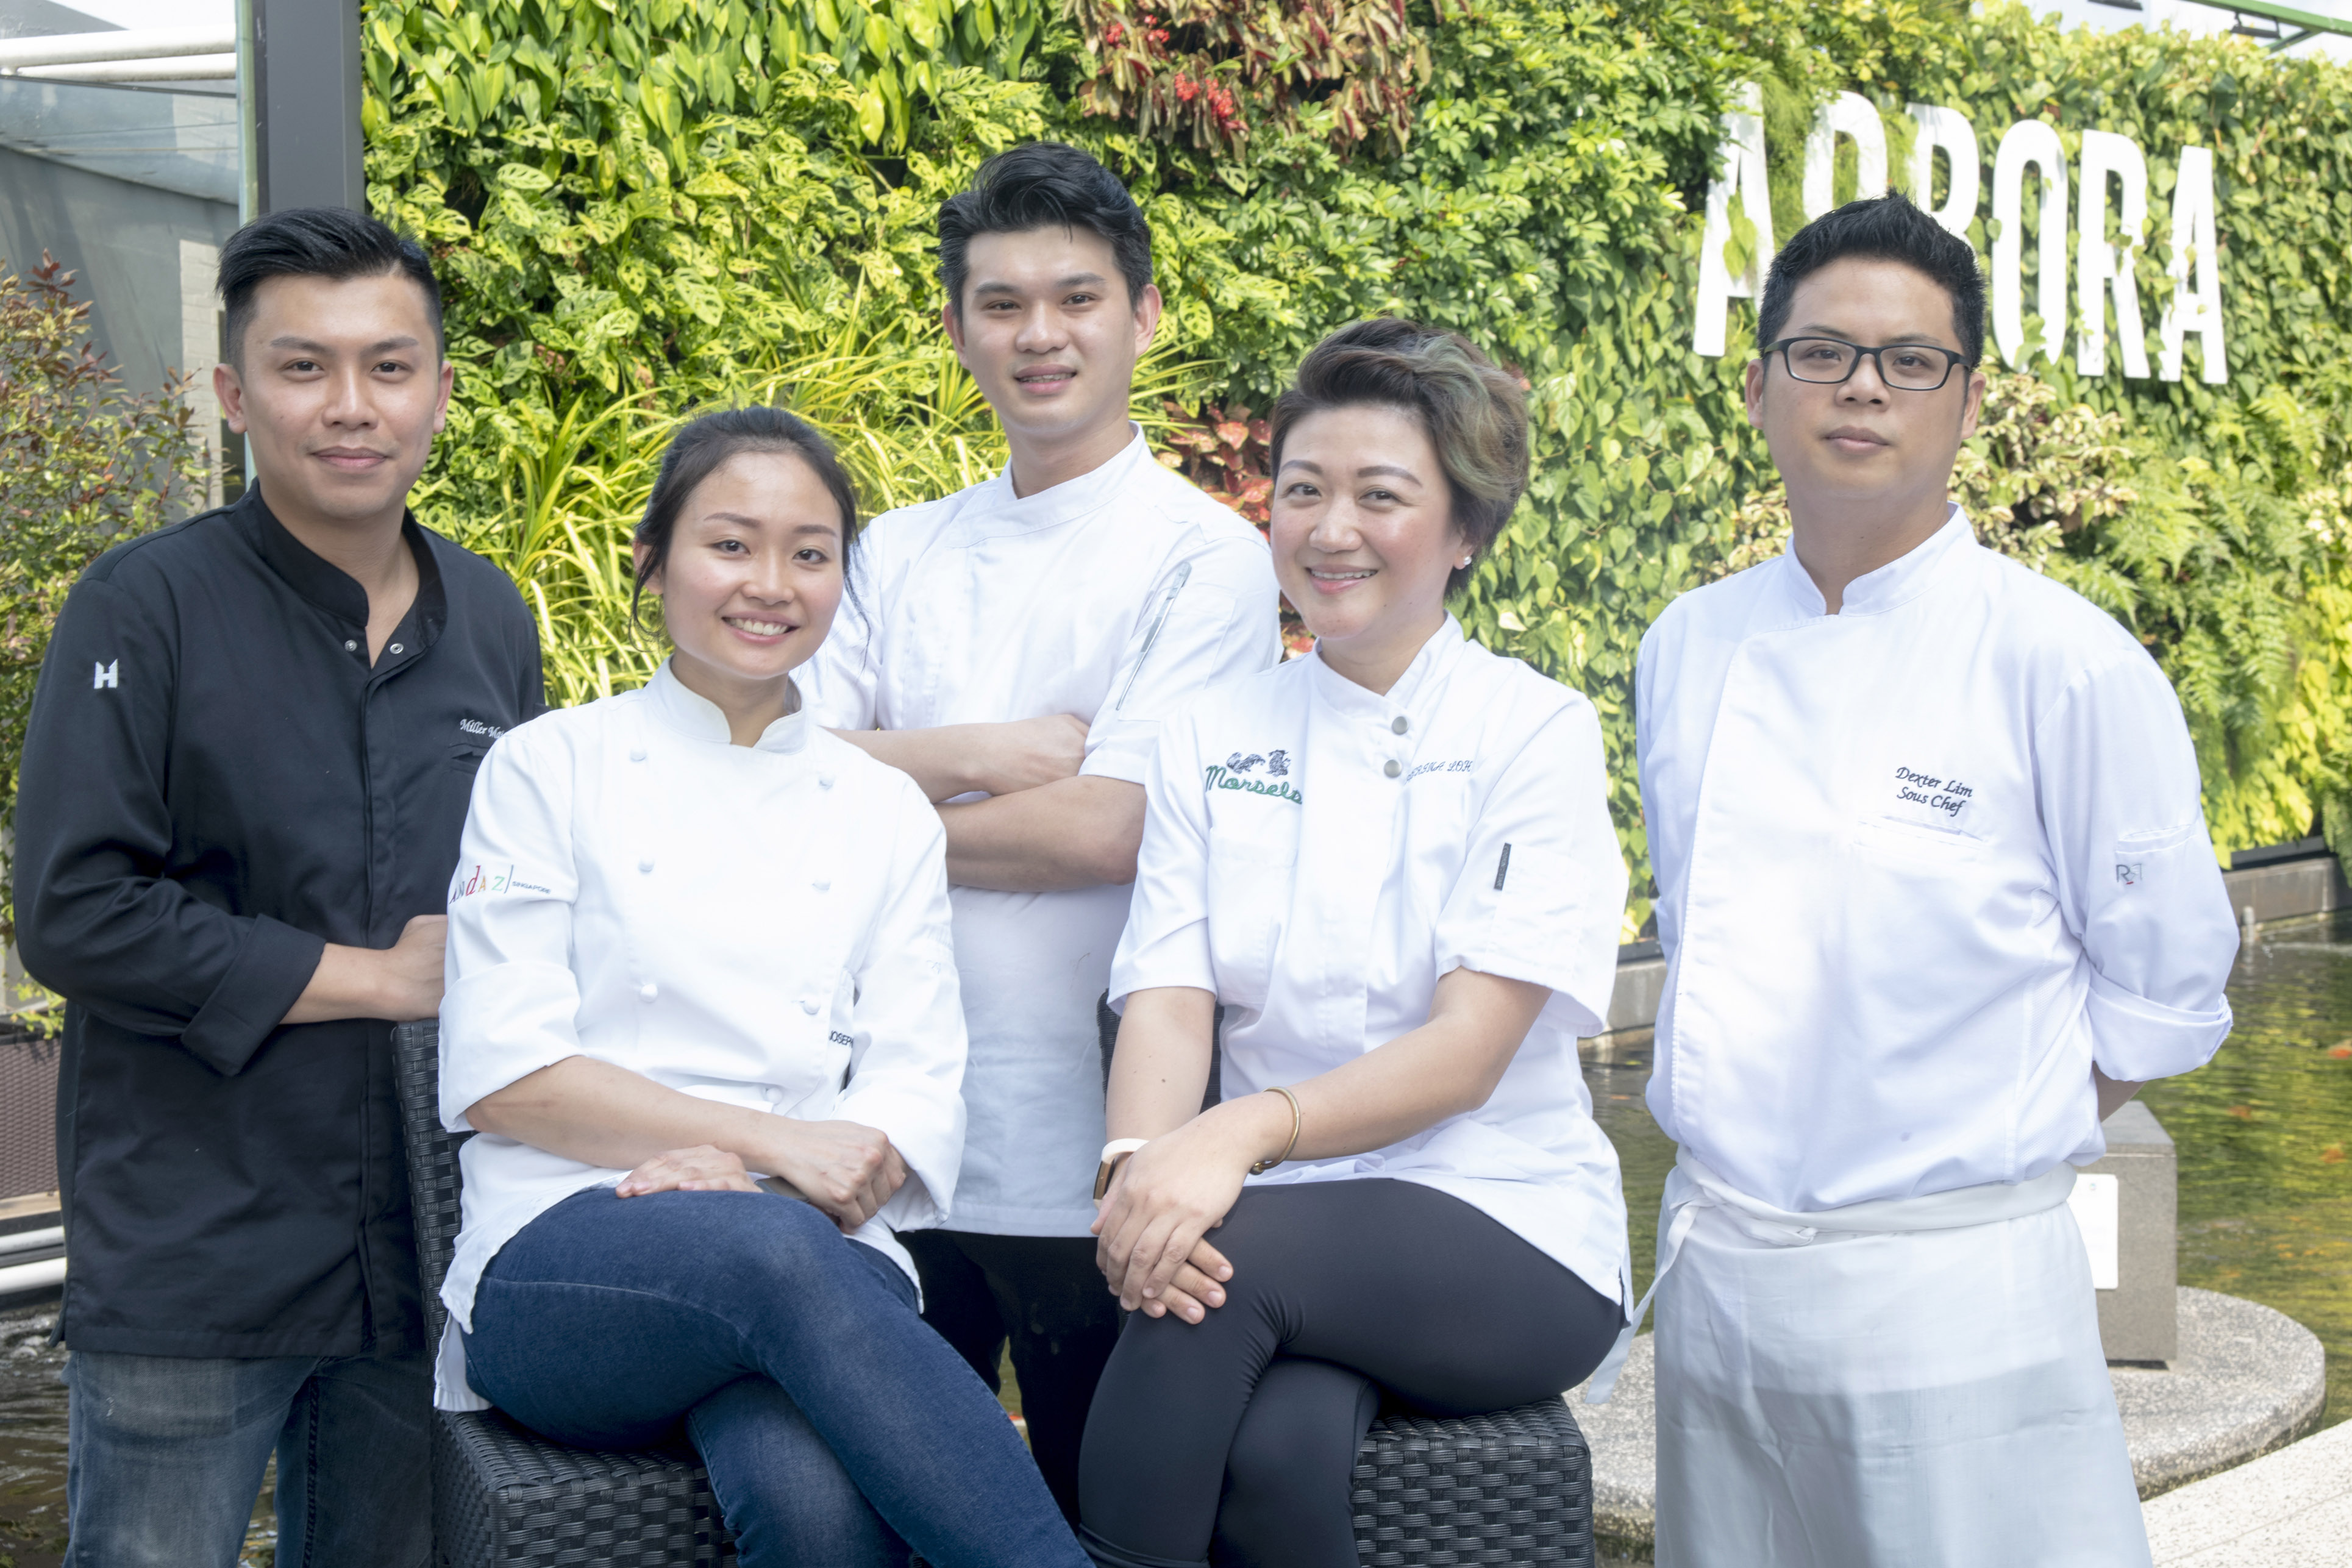 World Gourmet Summit 2019: For better food-waste management and plastic-free environment - Alvinology